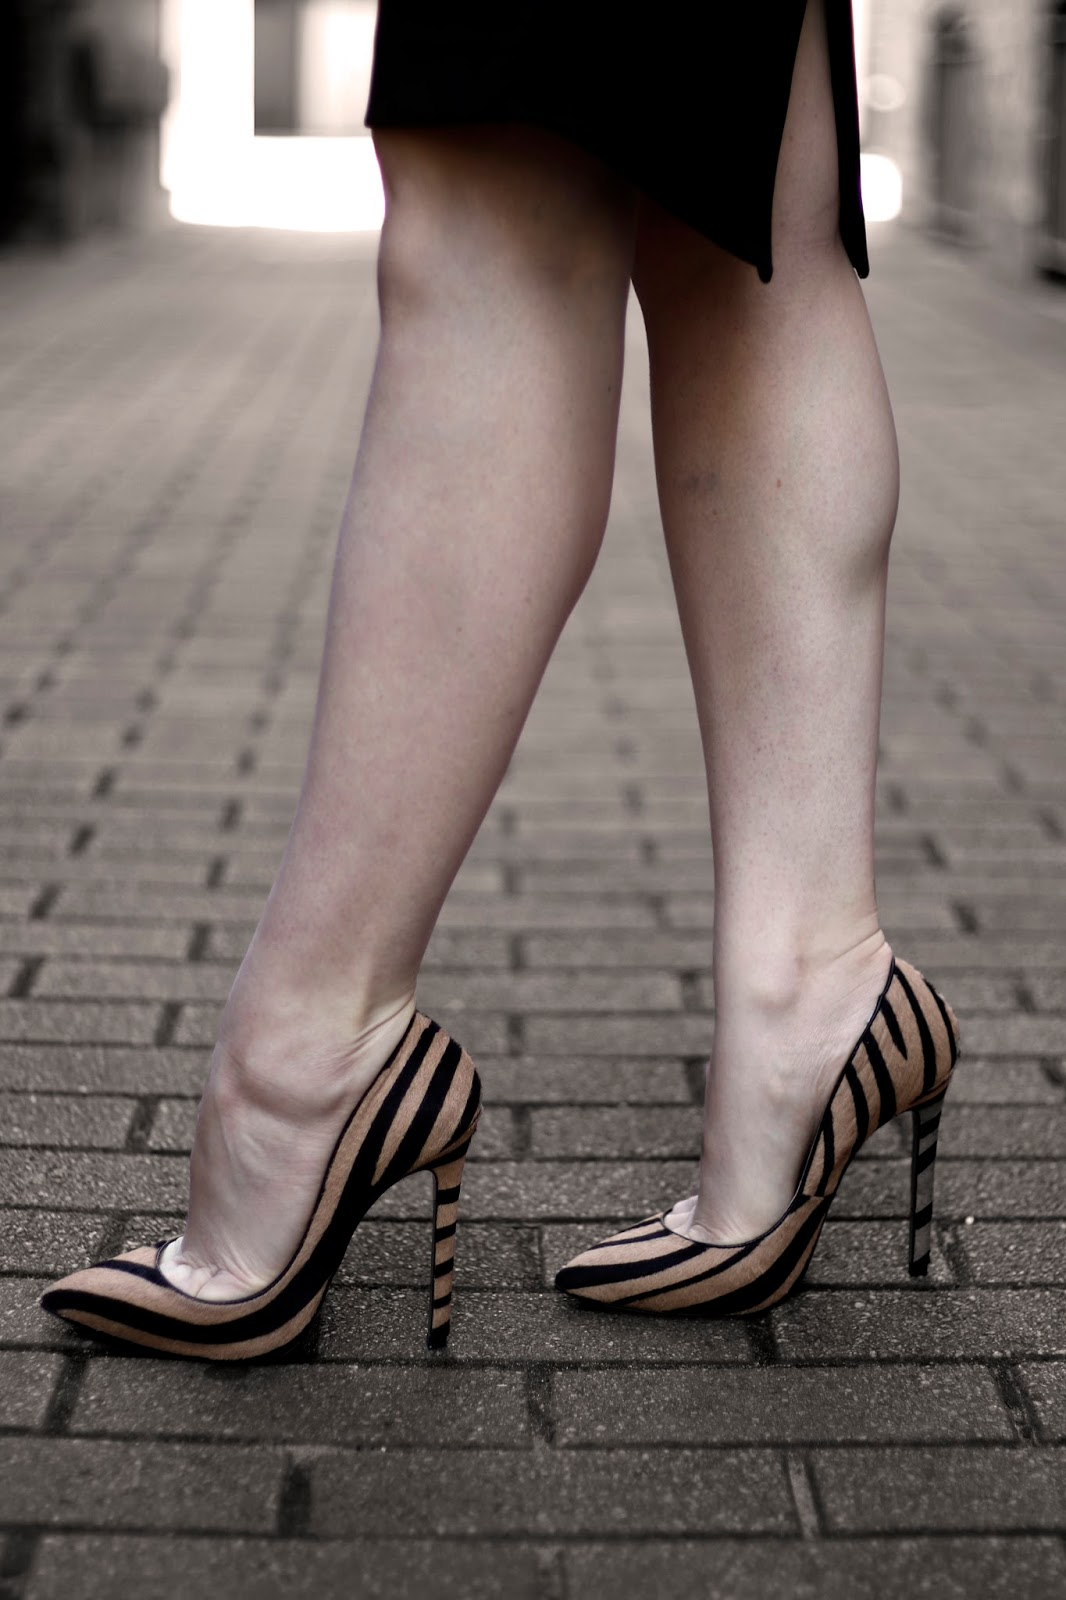 Small High Heel Shoes